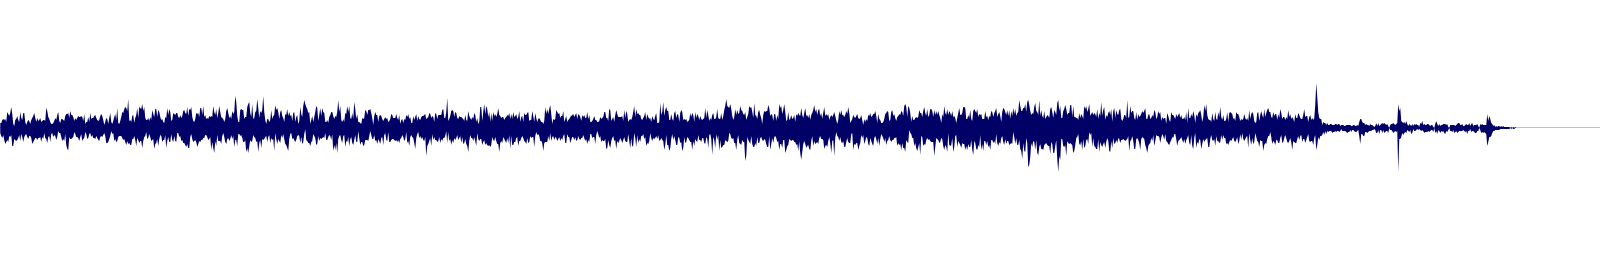 waveform of track #129696